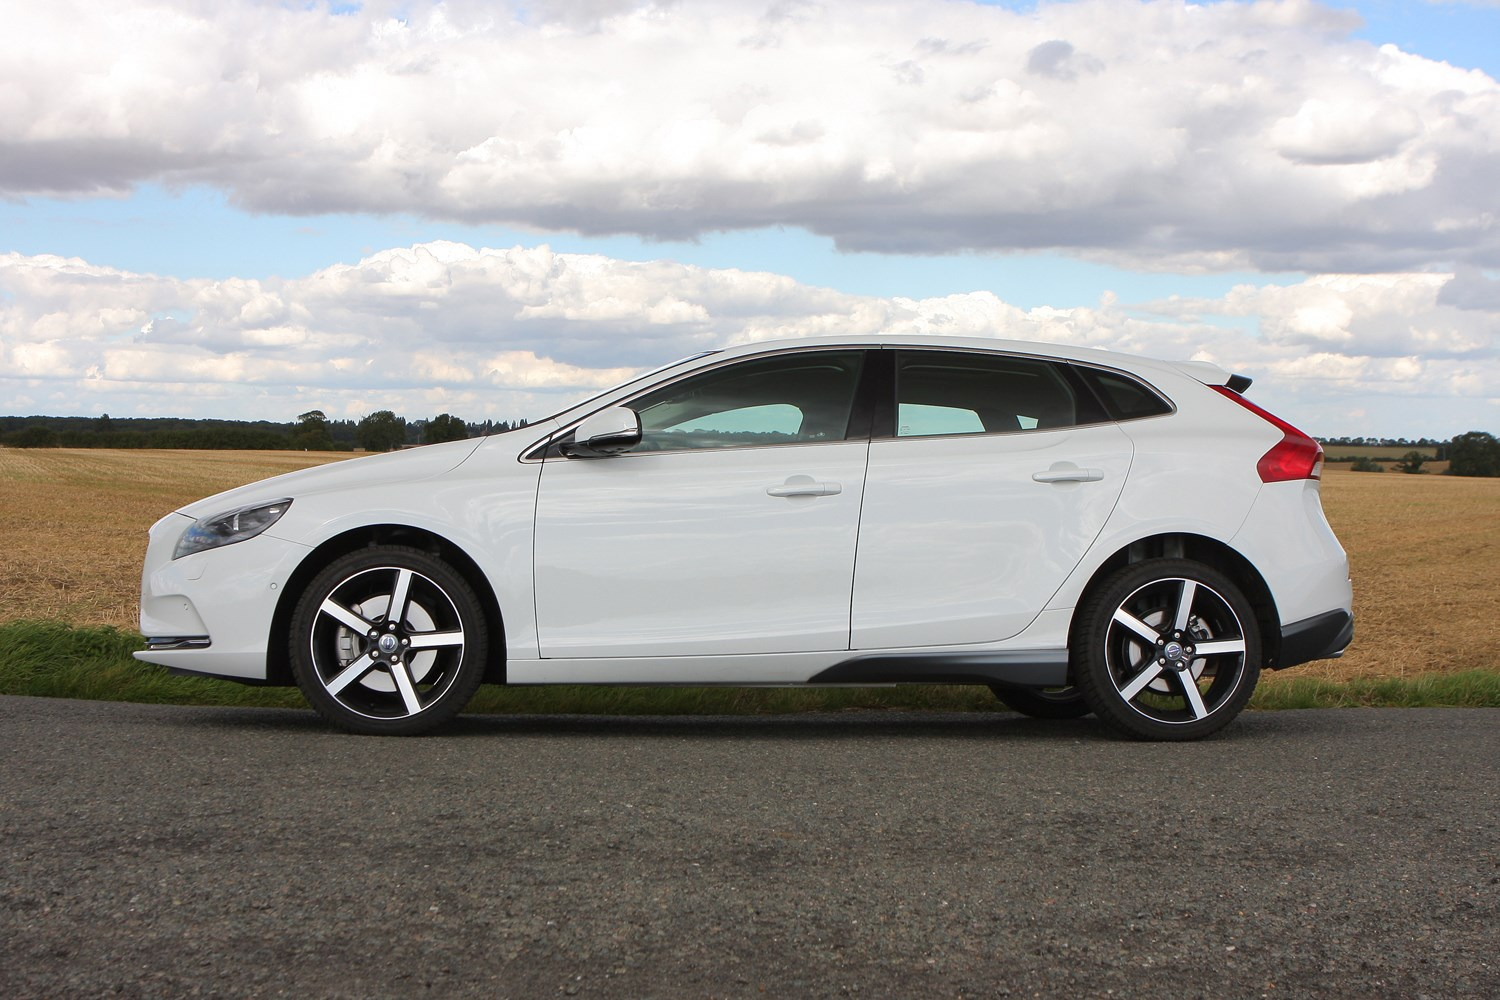 Volvo V40 Hatchback 2012 Photos Parkers